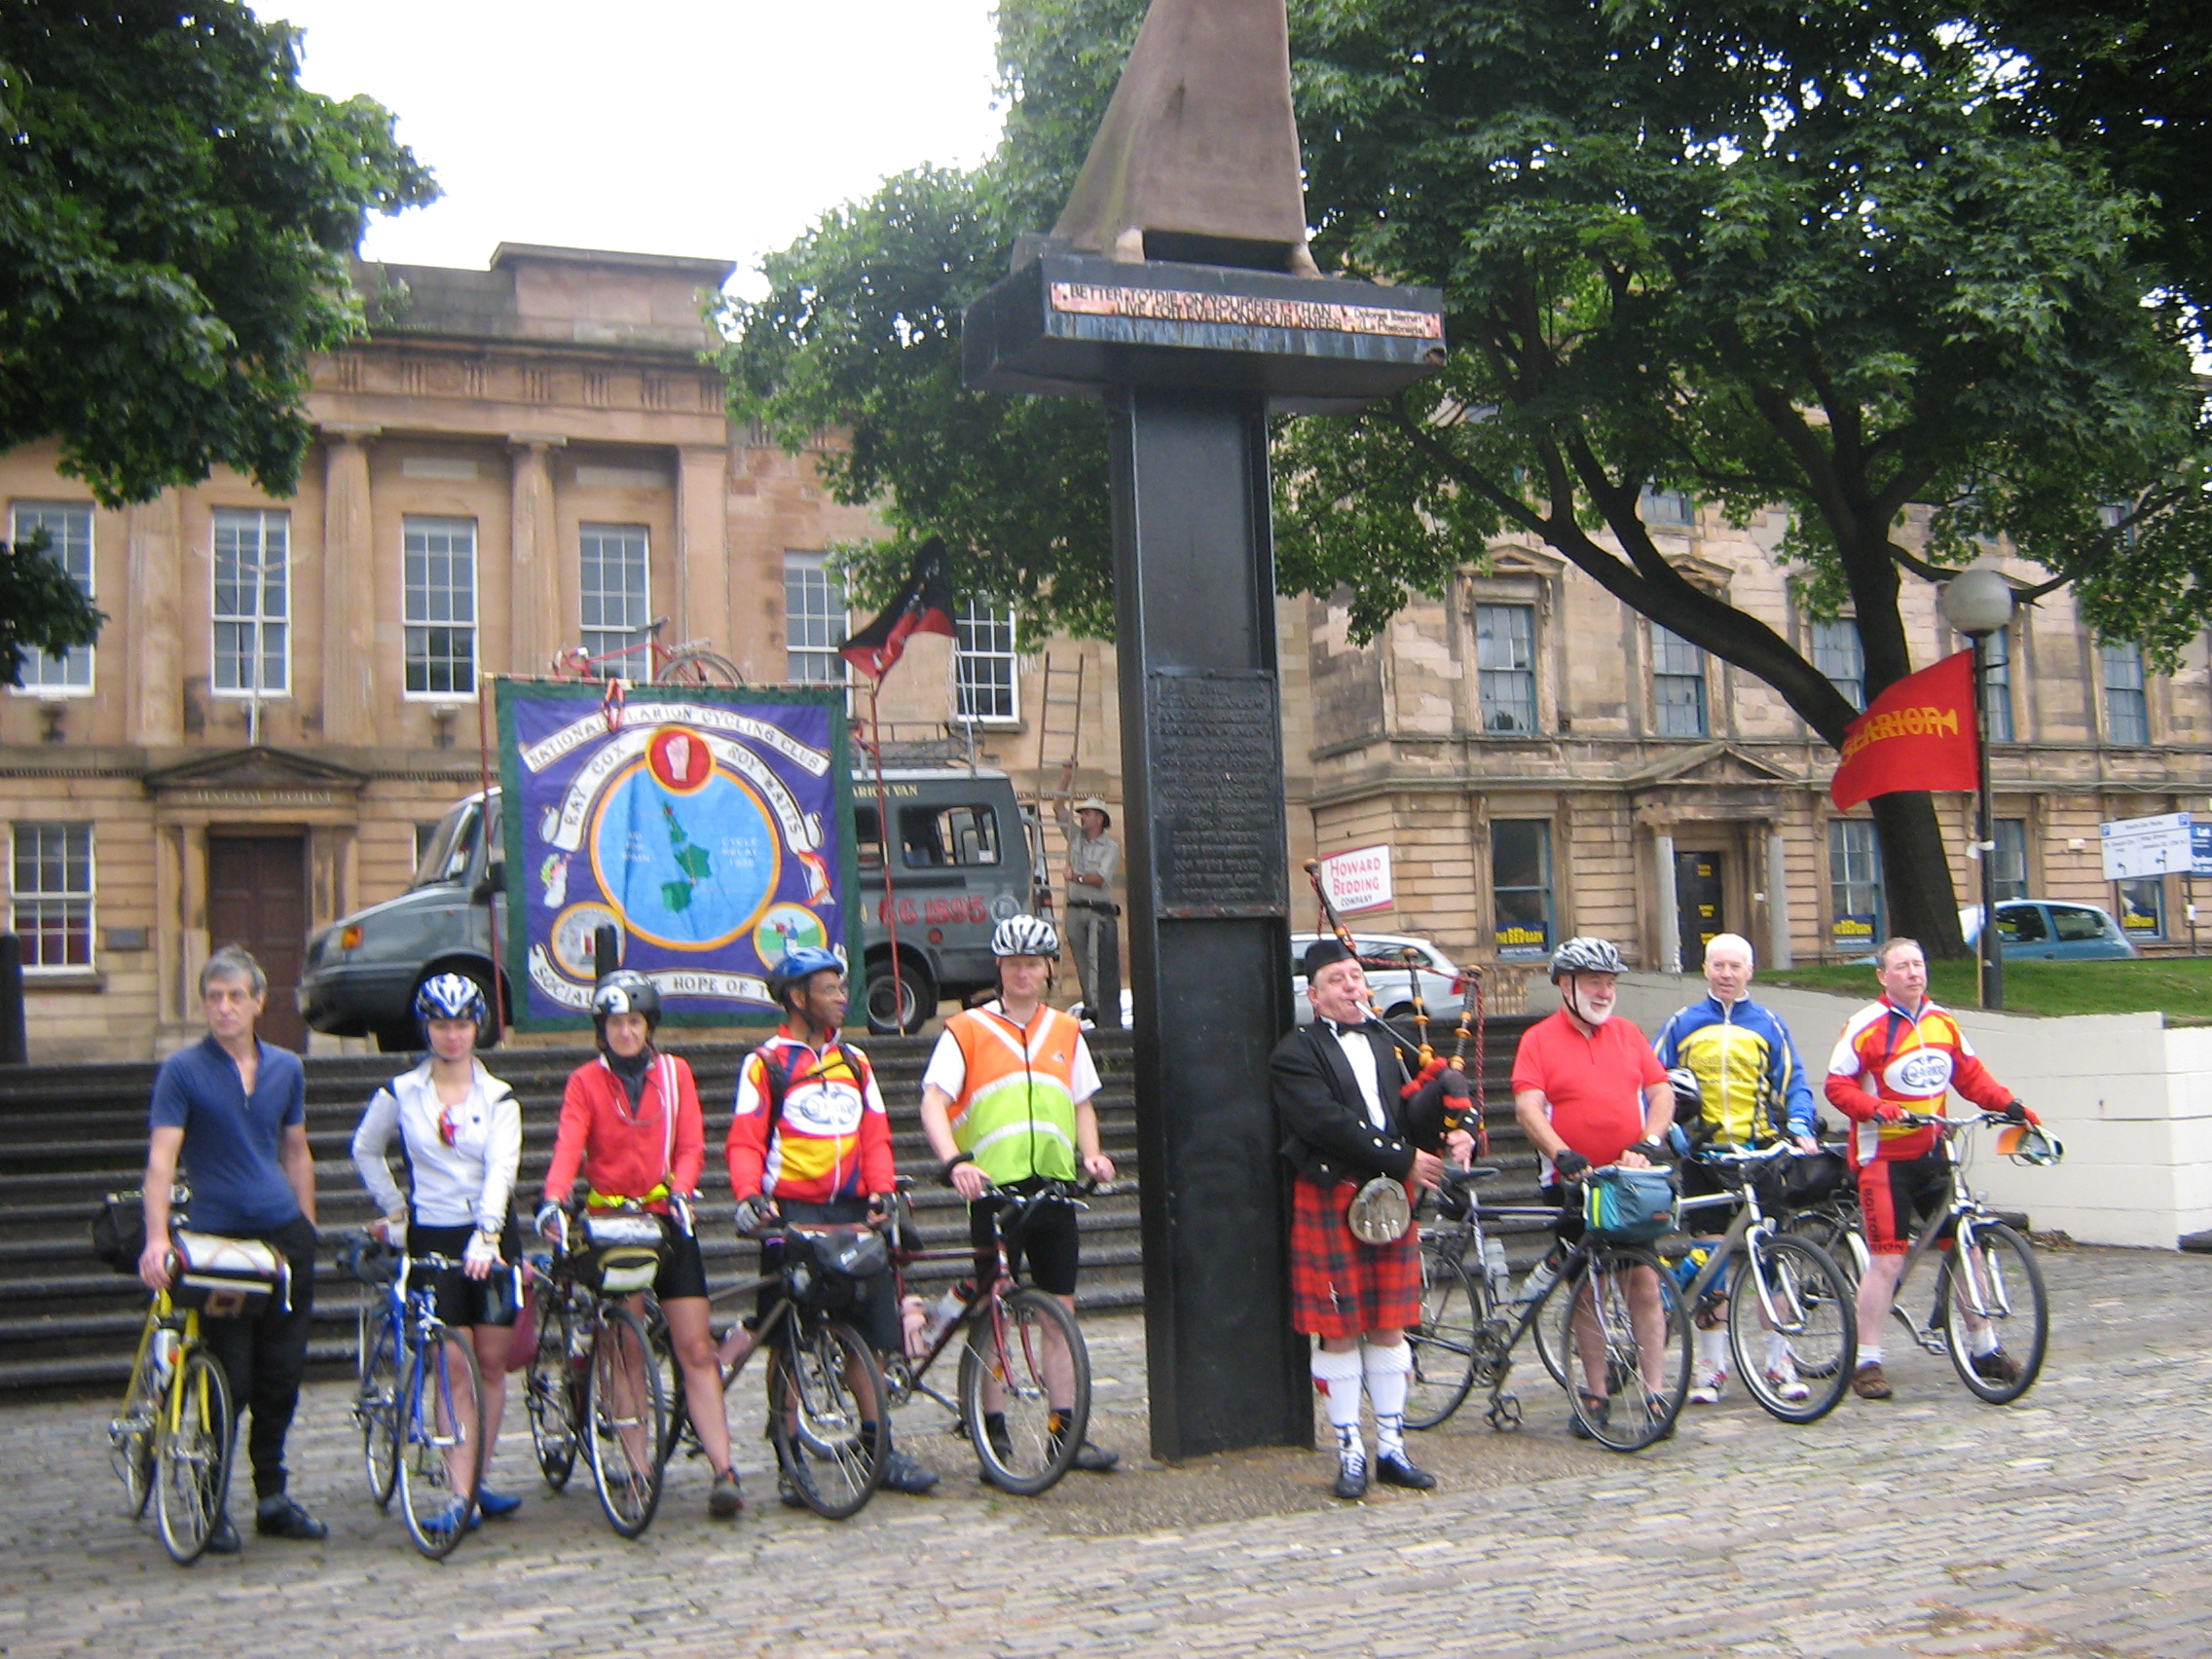 Cyclists in front of the International Brigade memorial on the River Clyde in Glasgow